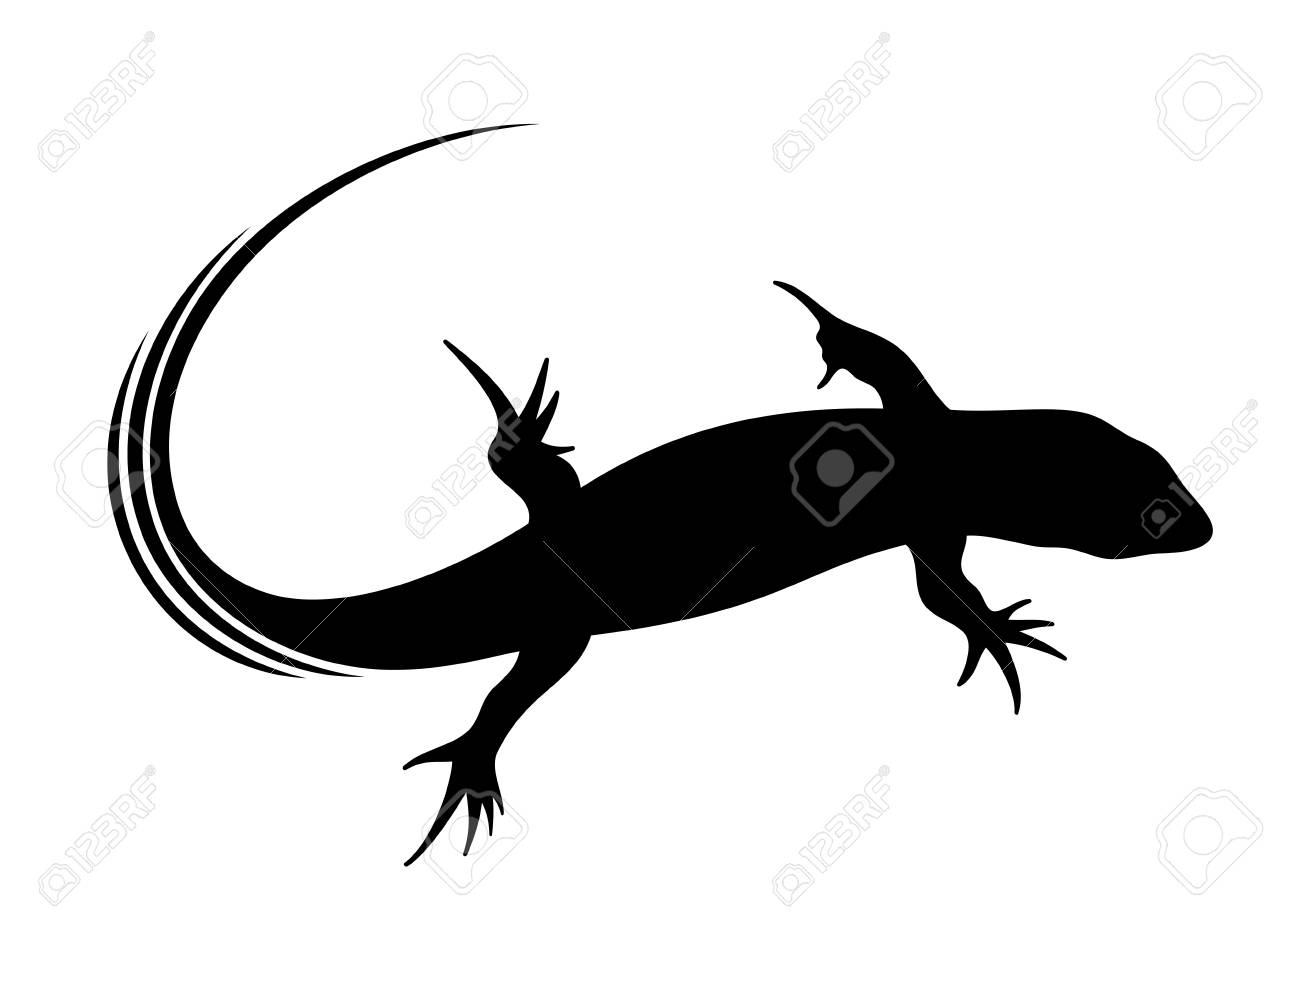 vector illustration of abstract lizard in black color royalty free